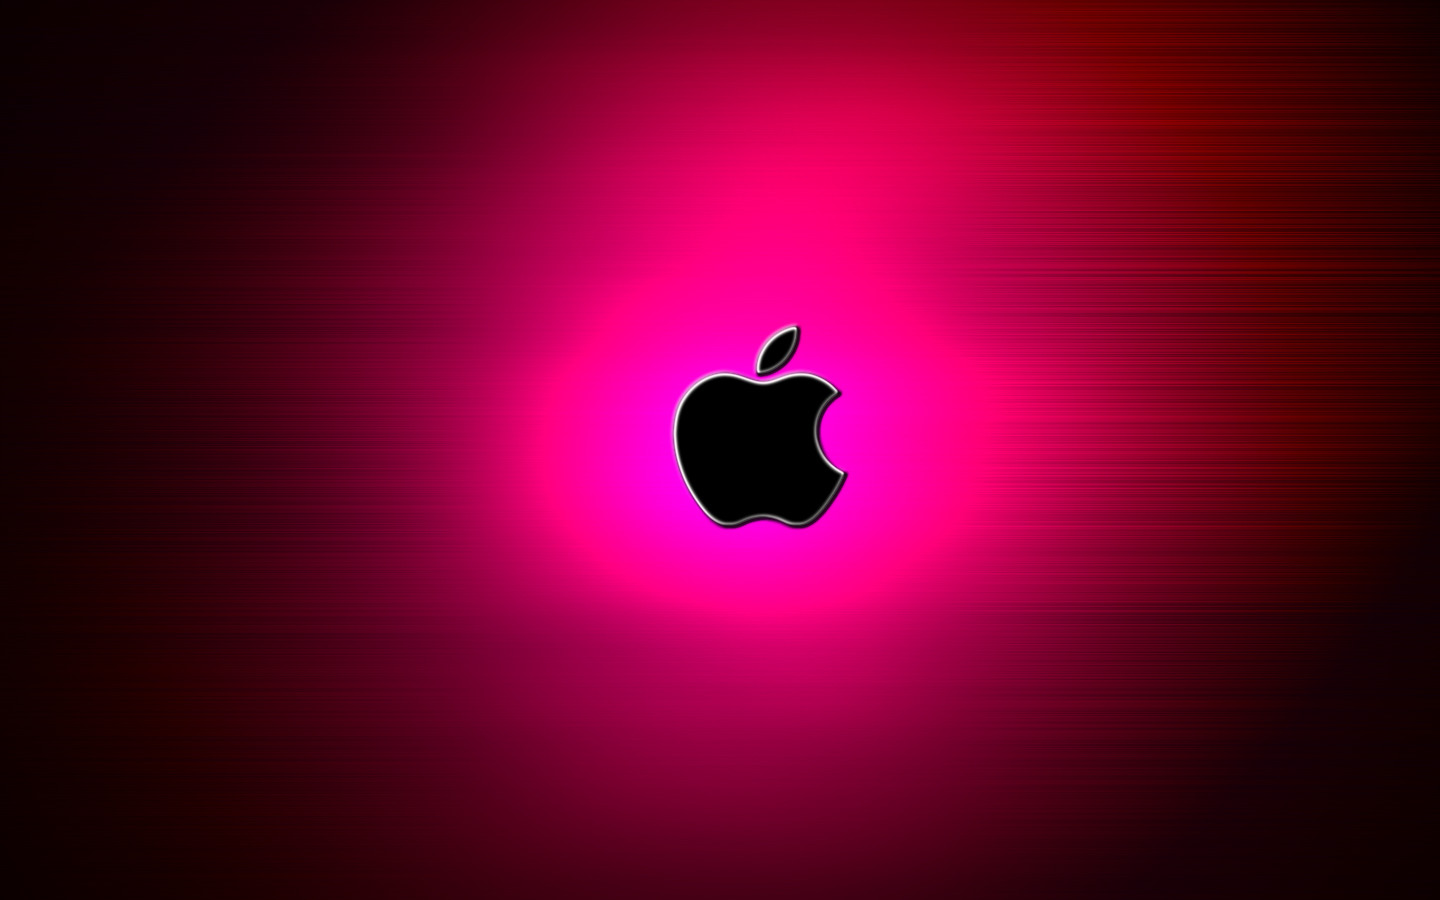 apple desktop wallpaper free download - wallpapersafari